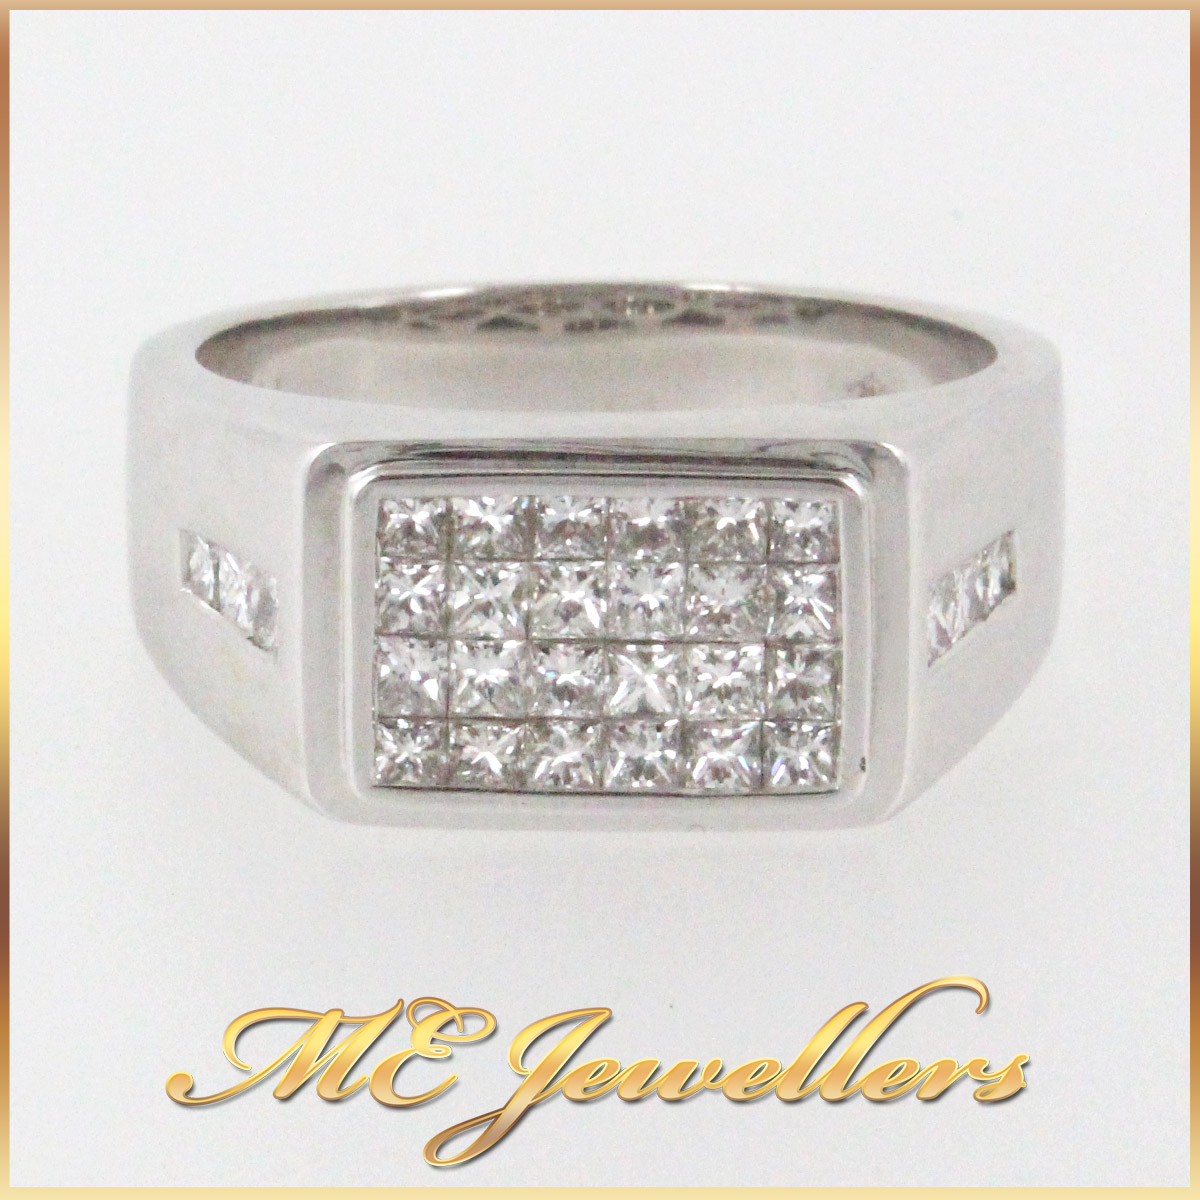 345 Mens Dress Ring With Illision Set Diamond in 18K White Gold front